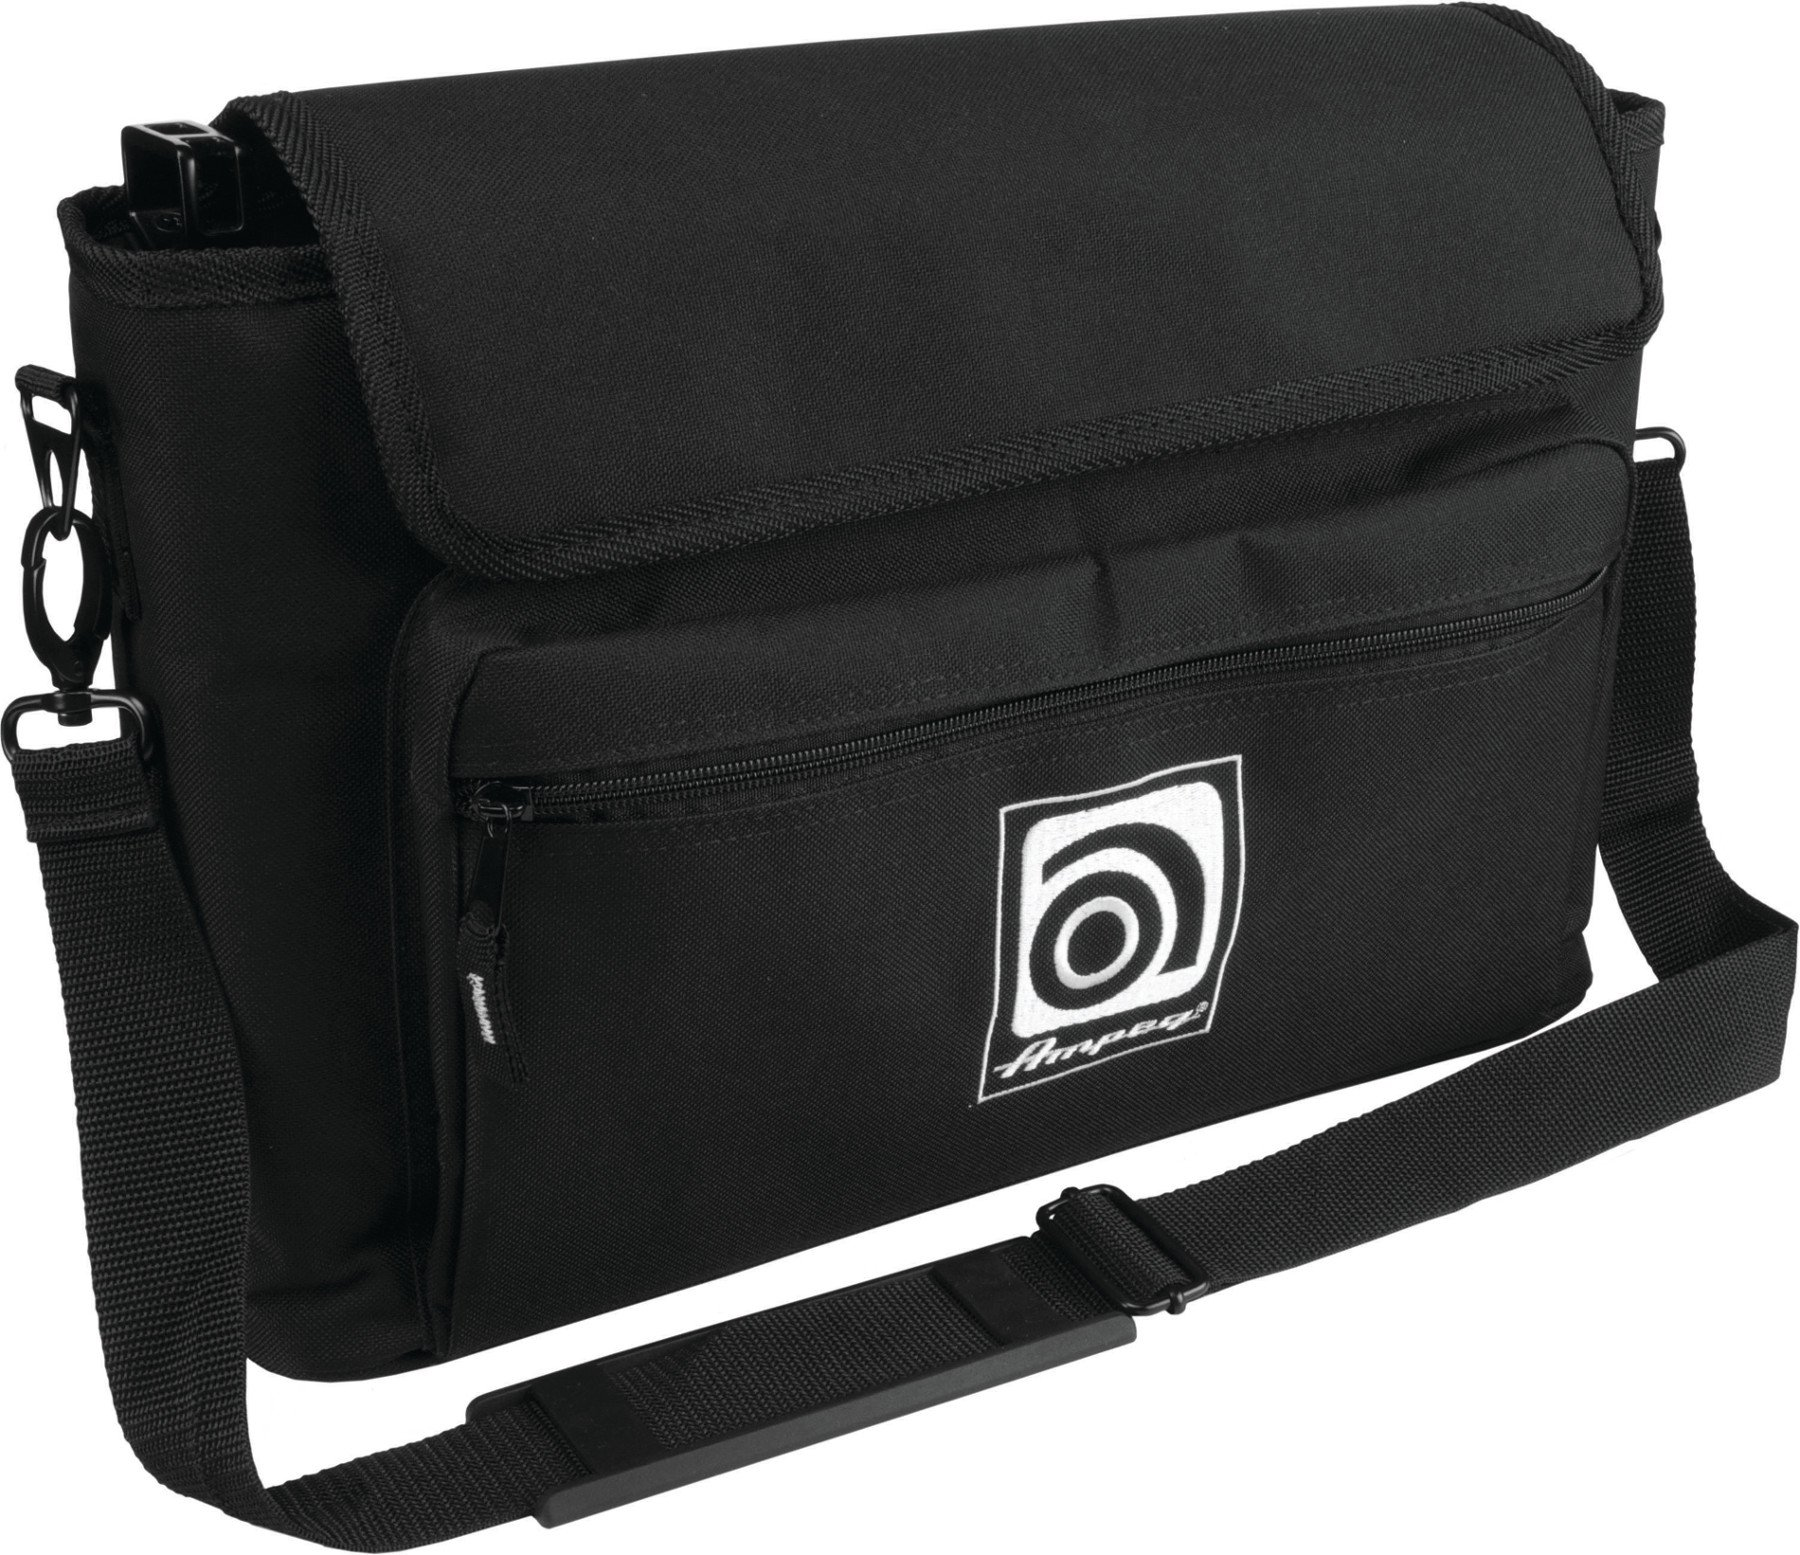 Padded Bag for PF-350, PF-500, or PF-800 Bass Heads